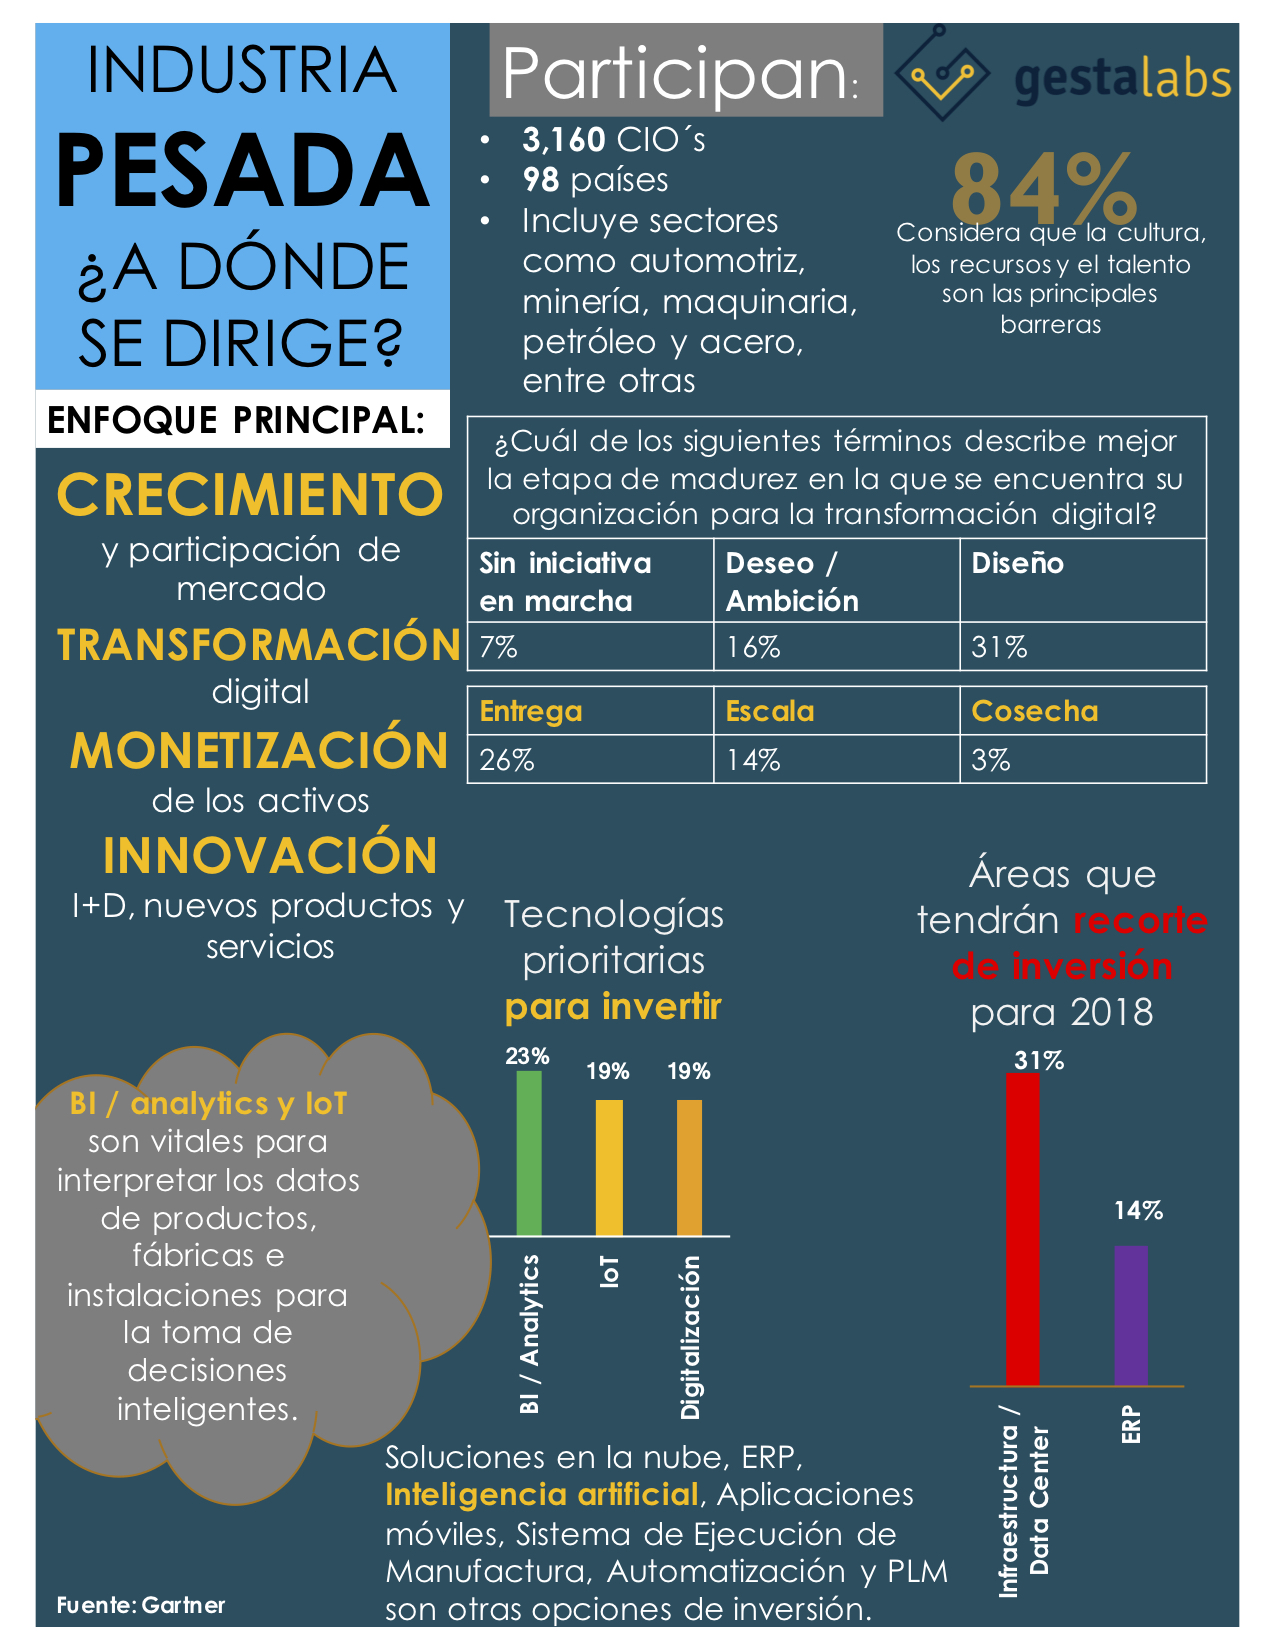 Transformación digital en la industria pesada